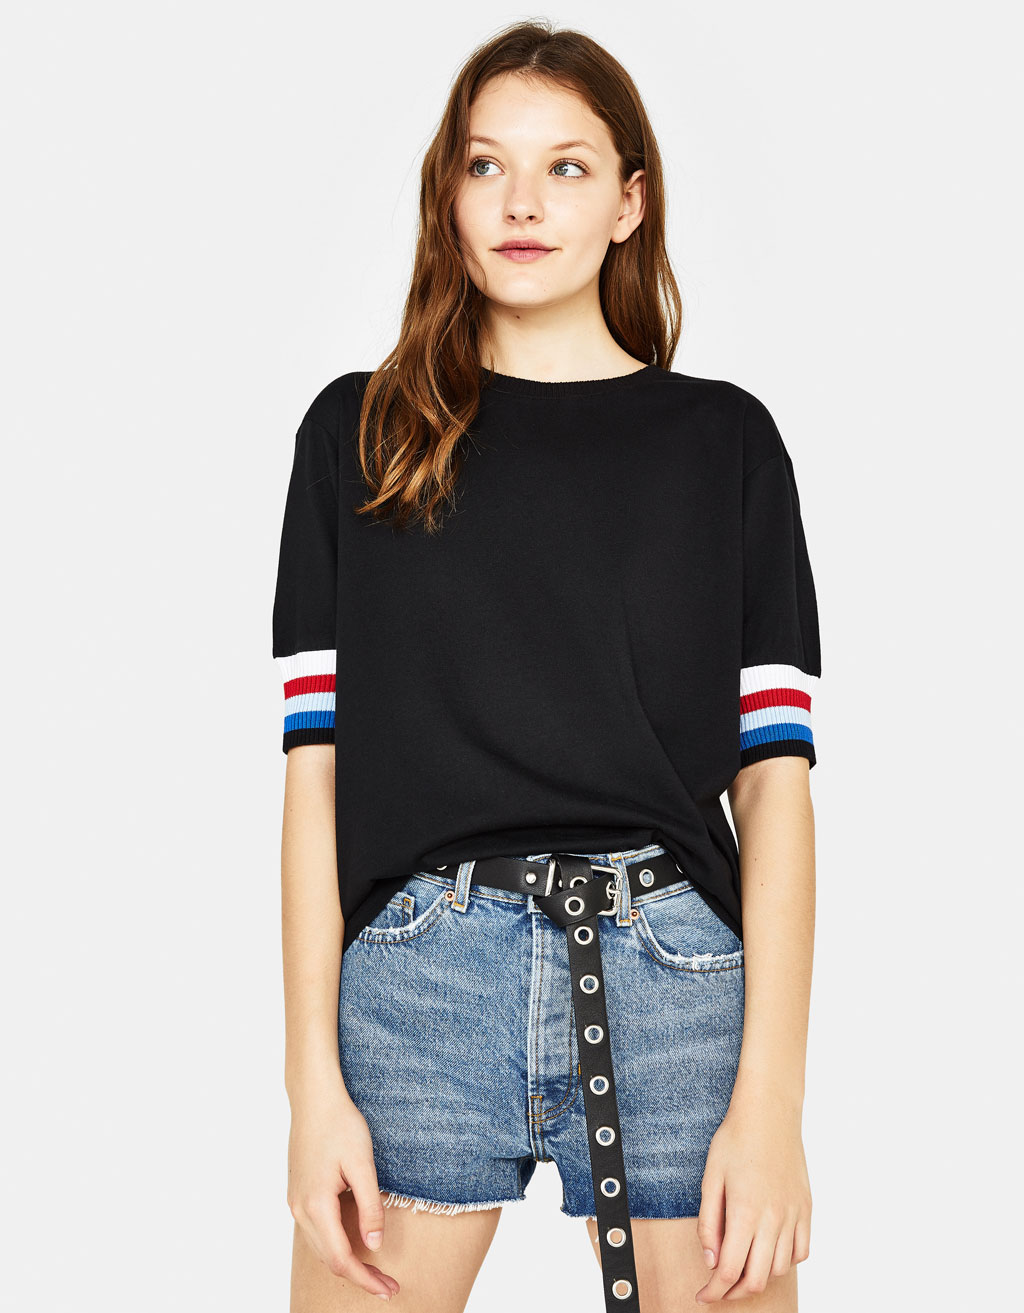 T-shirt with striped sleeves